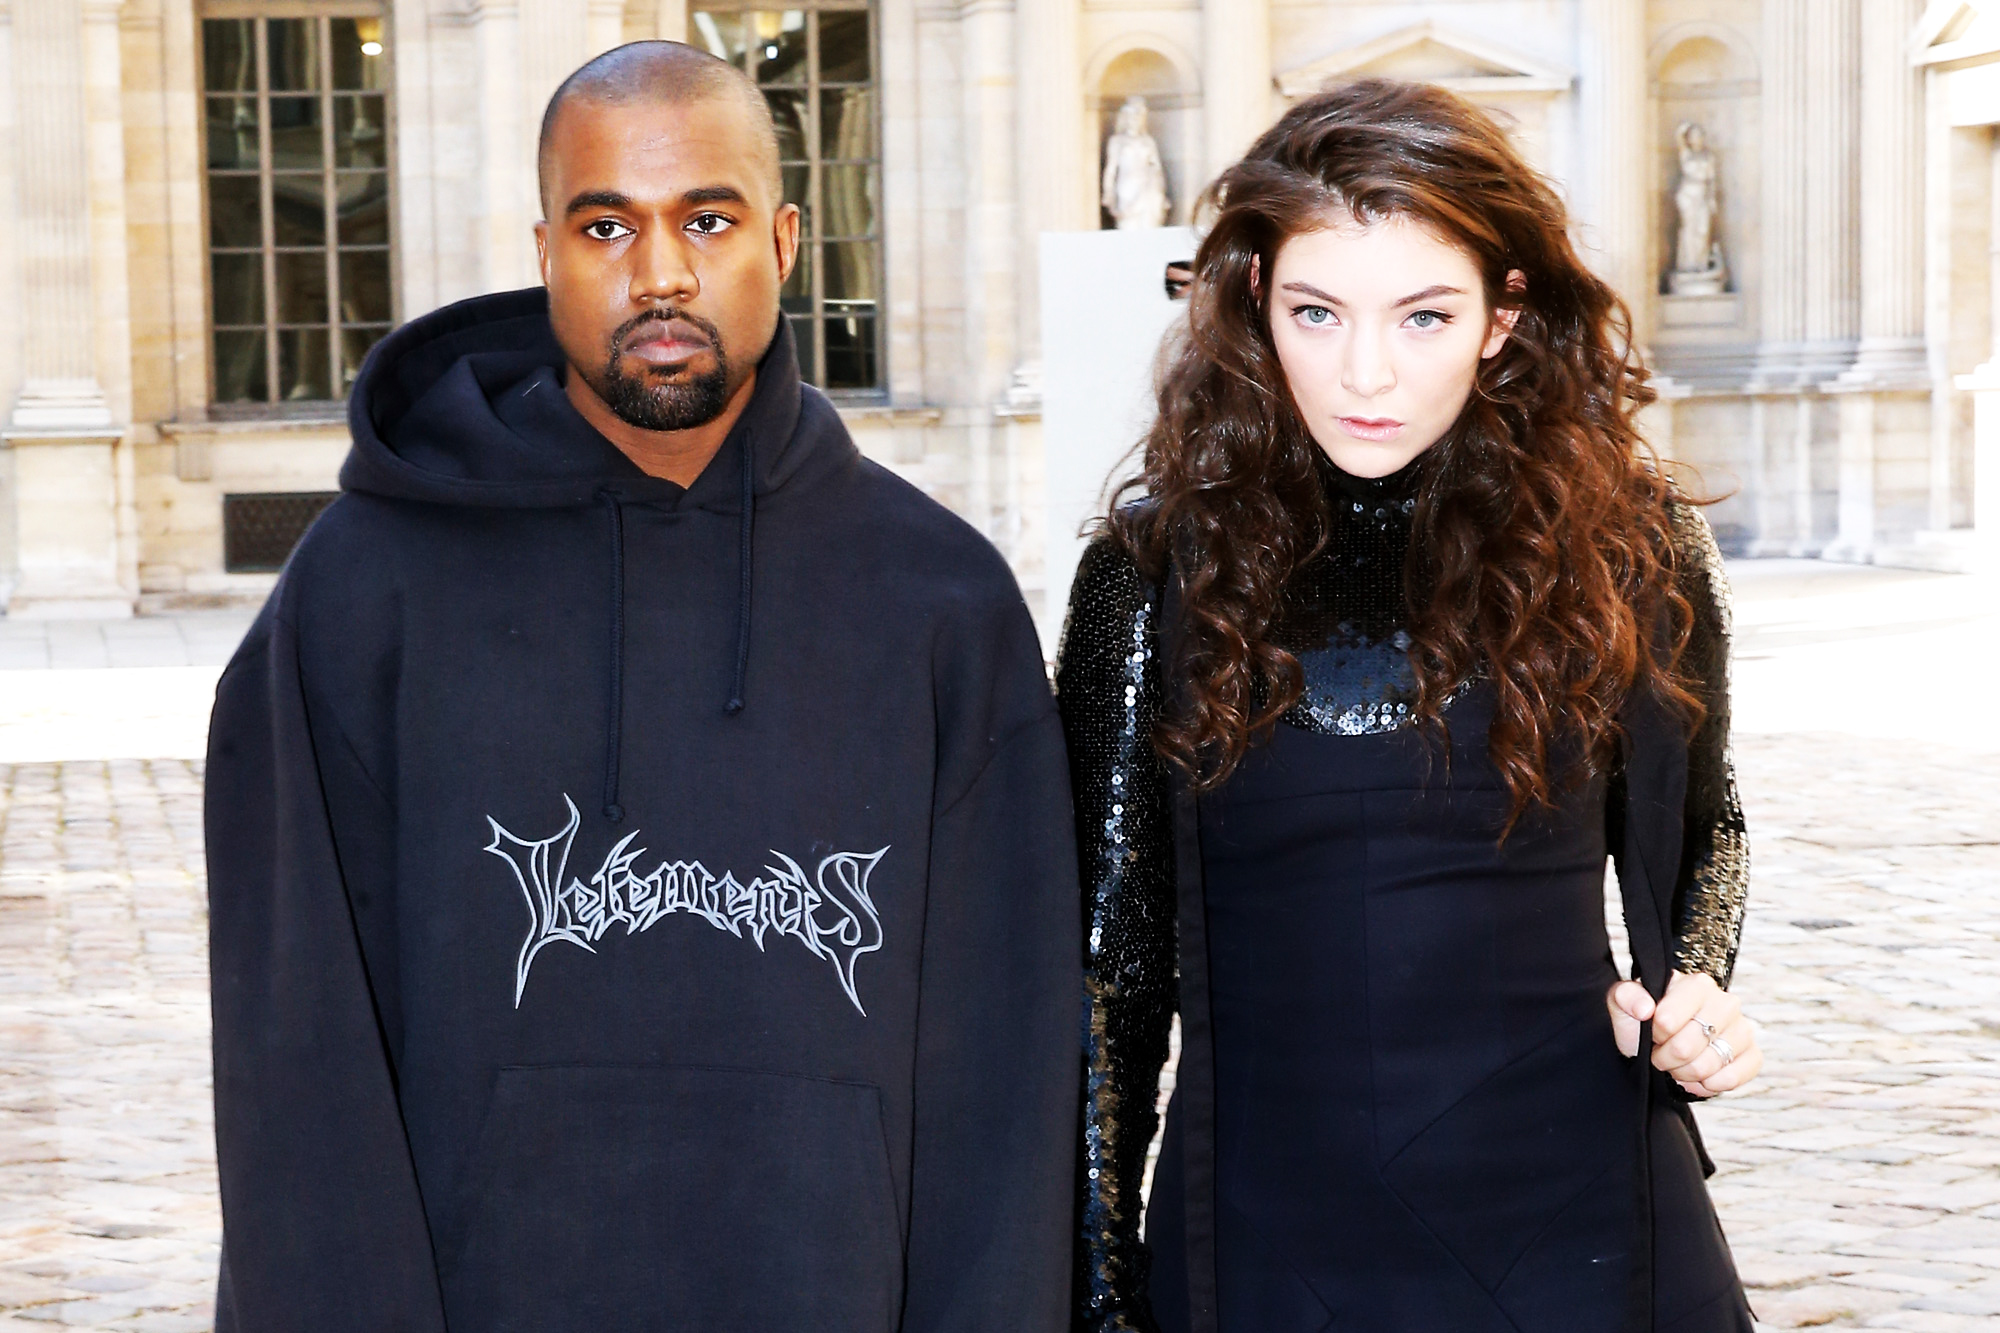 Kanye West and Lorde attend the Christian Dior show as part of the Paris Fashion Week Womenswear Fall/Winter 2015/2016 in Paris, on March 6, 2015.